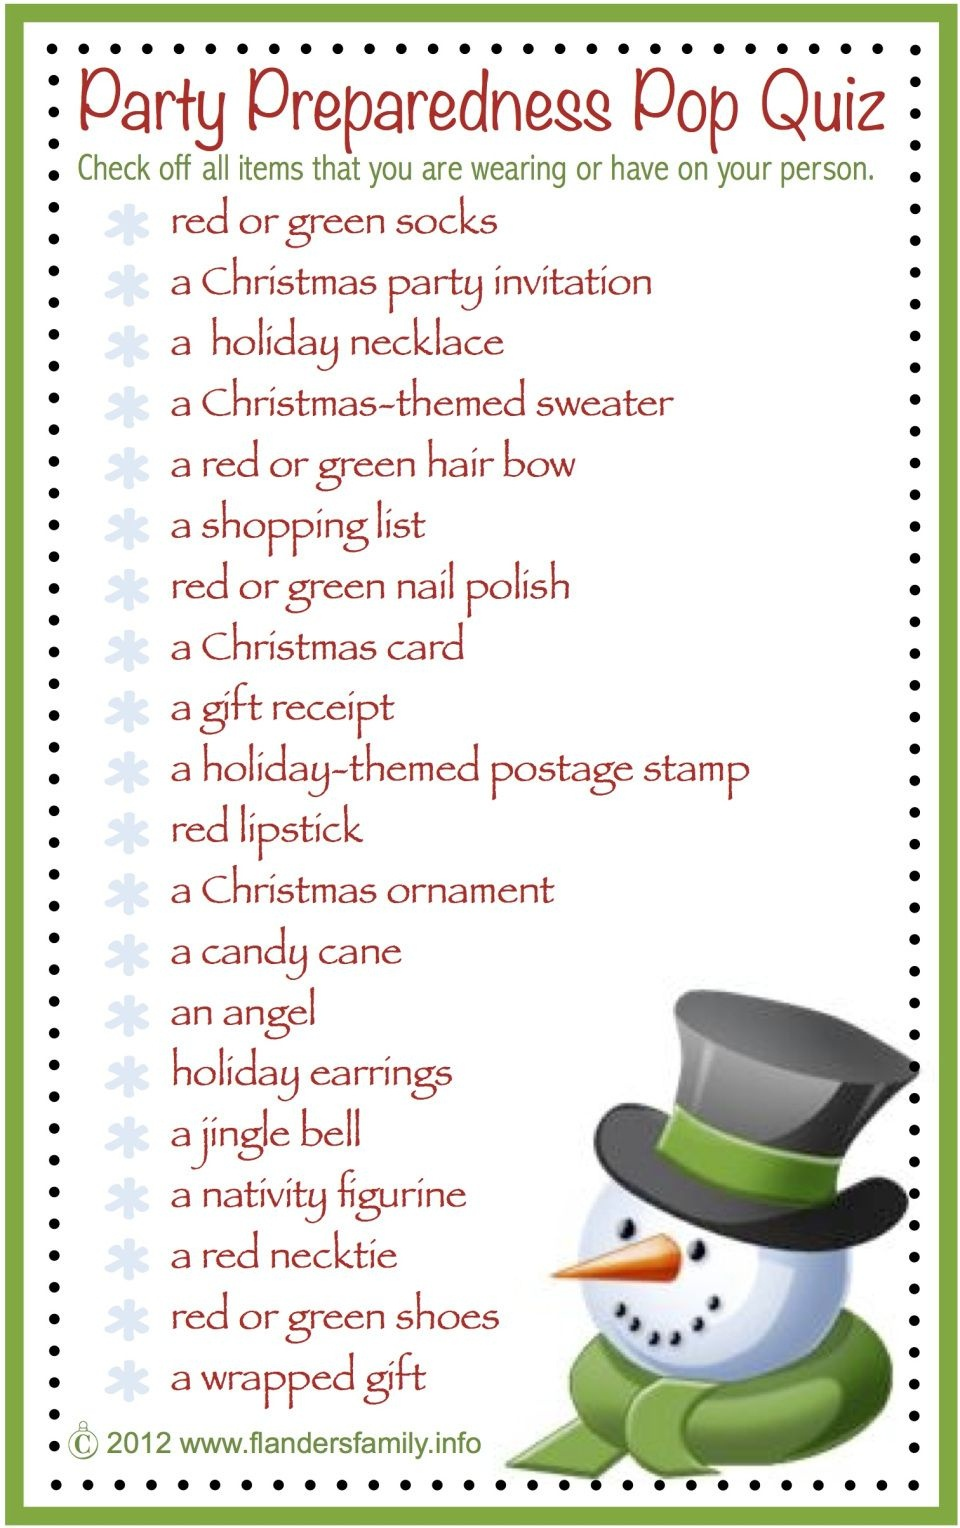 This Site Has Lots Of Free Printable Party Games And Activities For - Free Printable Christmas Games For Family Gatherings